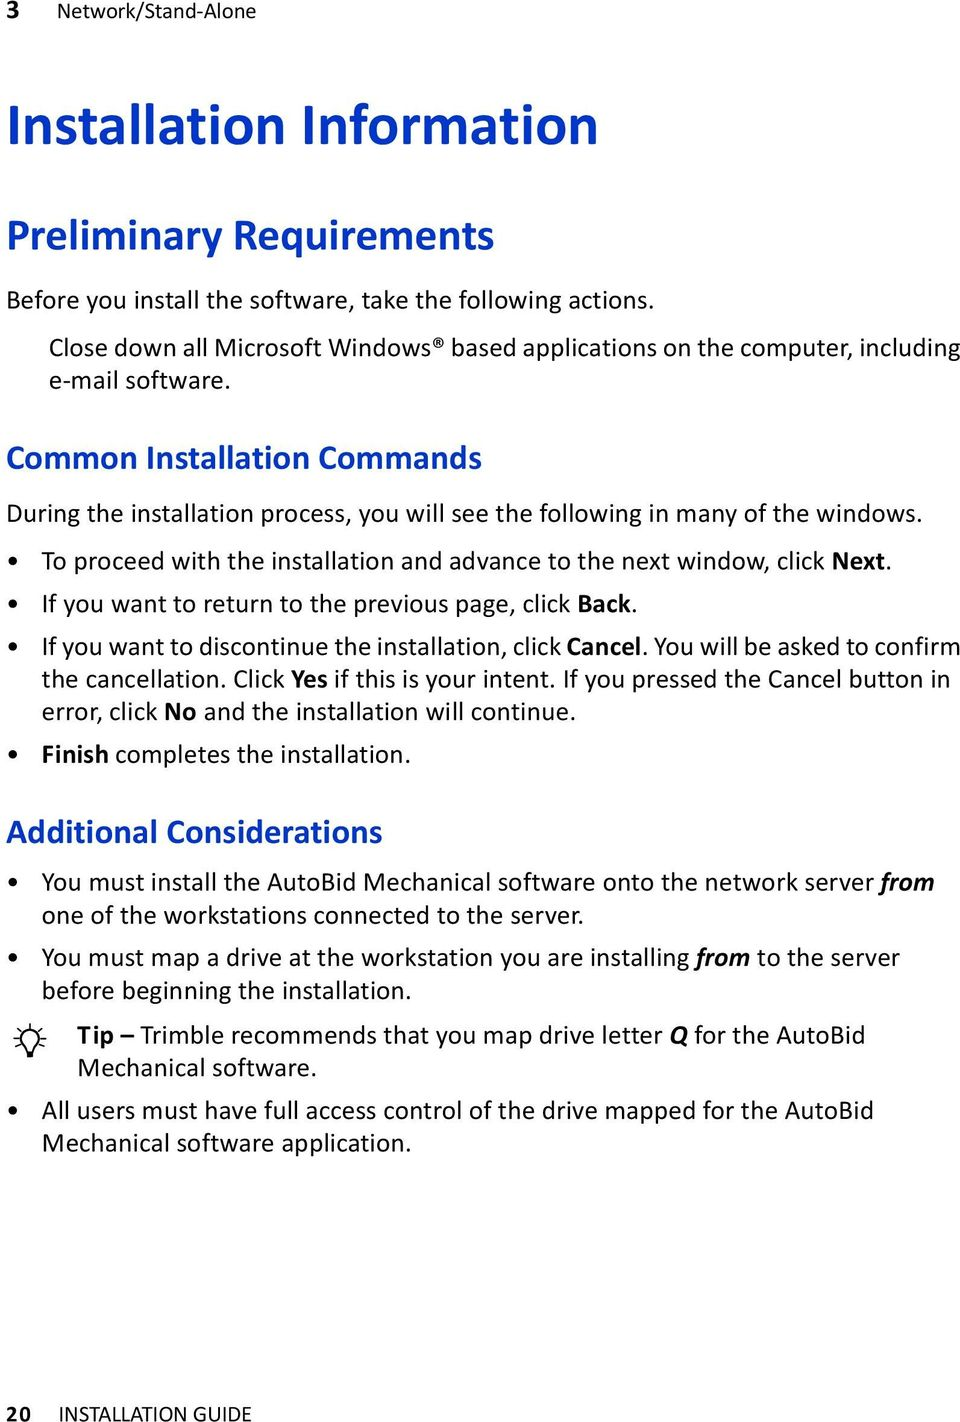 Common Installation Commands During the installation process, you will see the following in many of the windows. To proceed with the installation and advance to the next window, click Next.